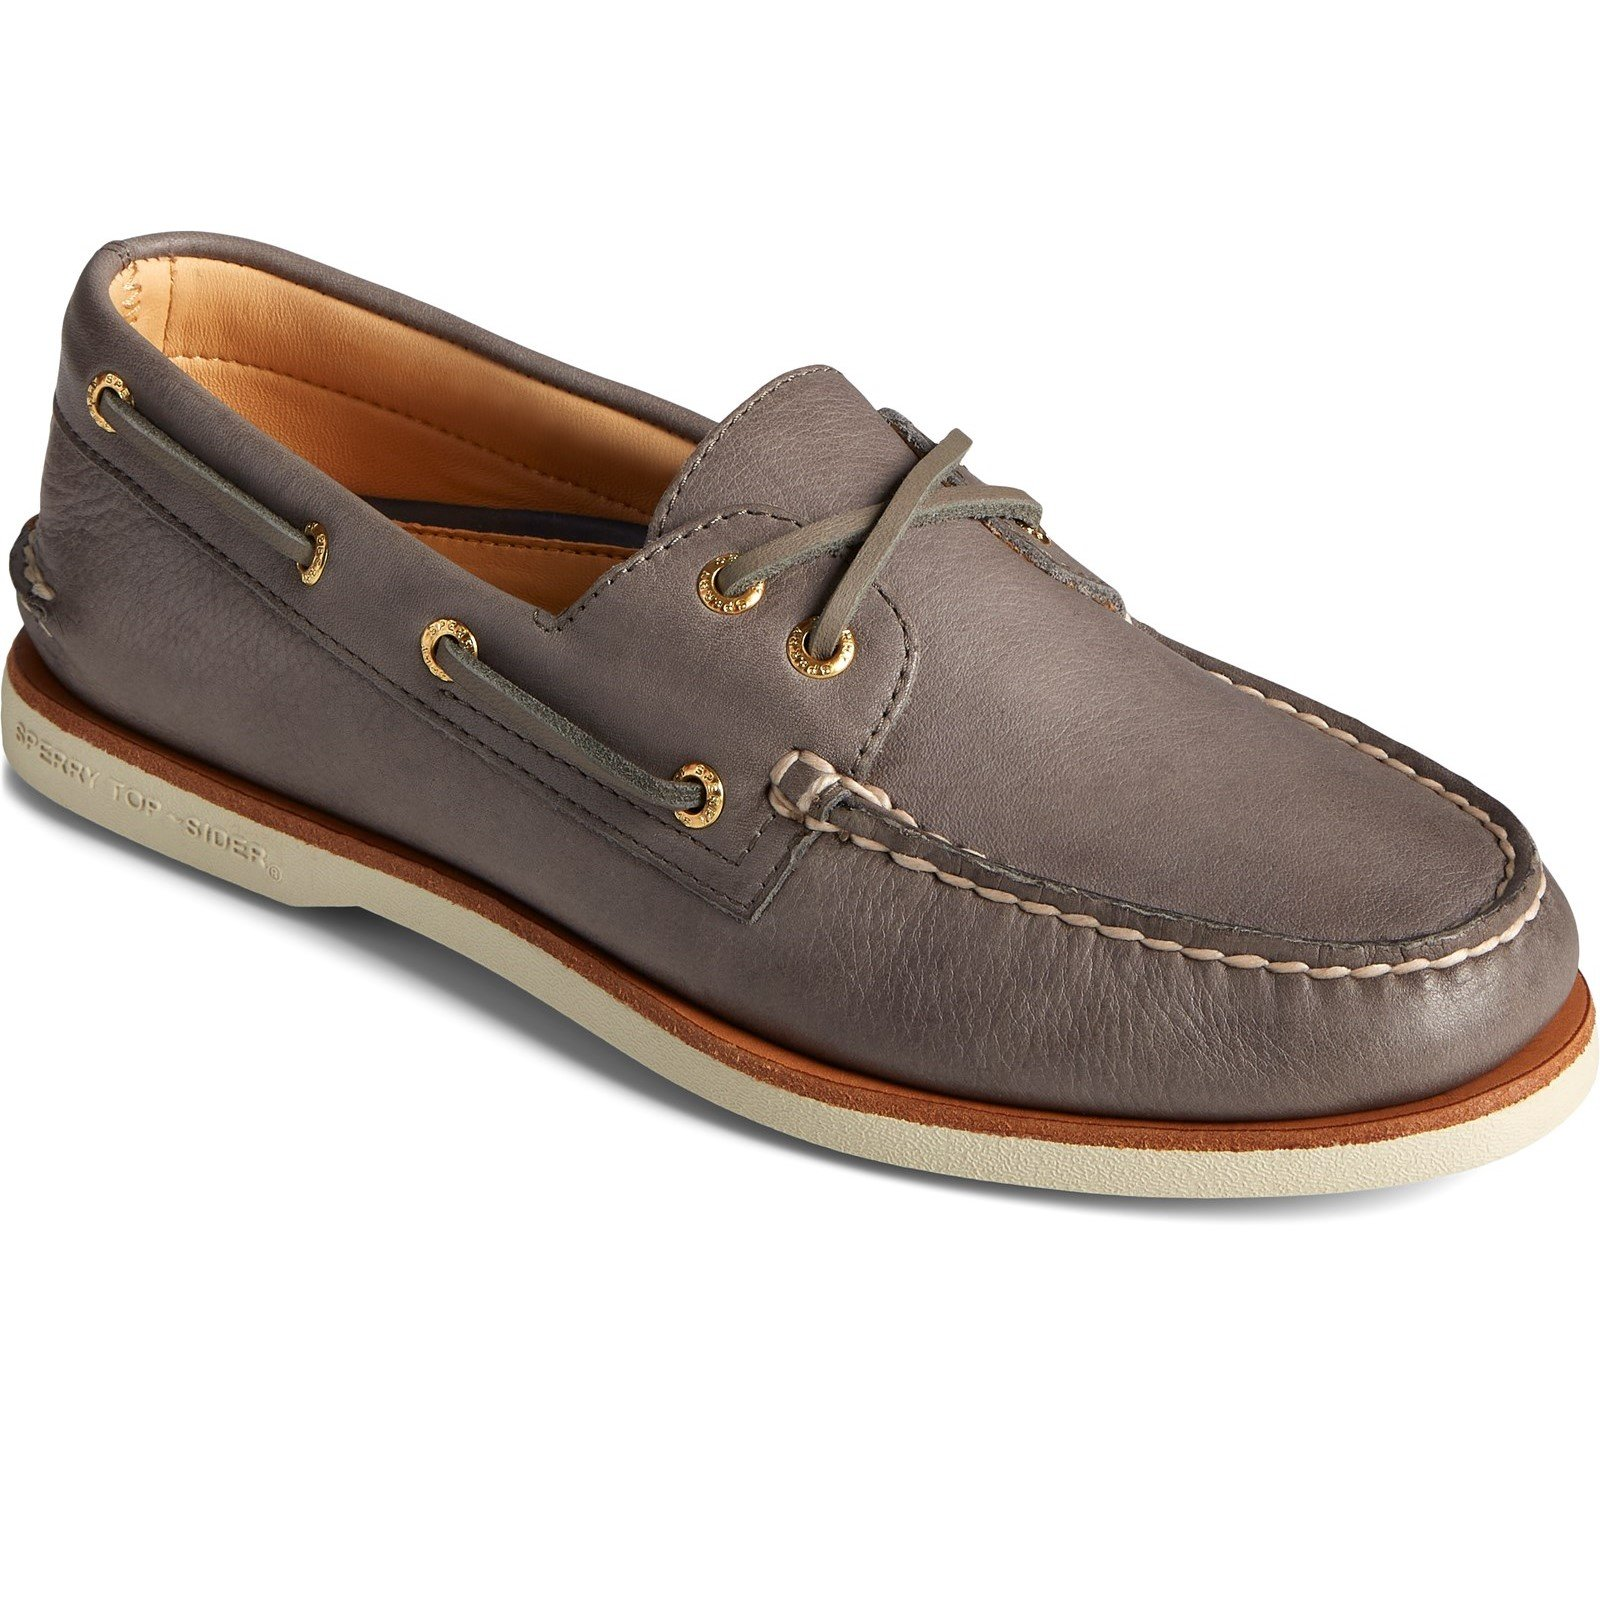 Sperry Men's A/O 2-Eye Boat Shoe Various Colours 32926 - Charcoal 12